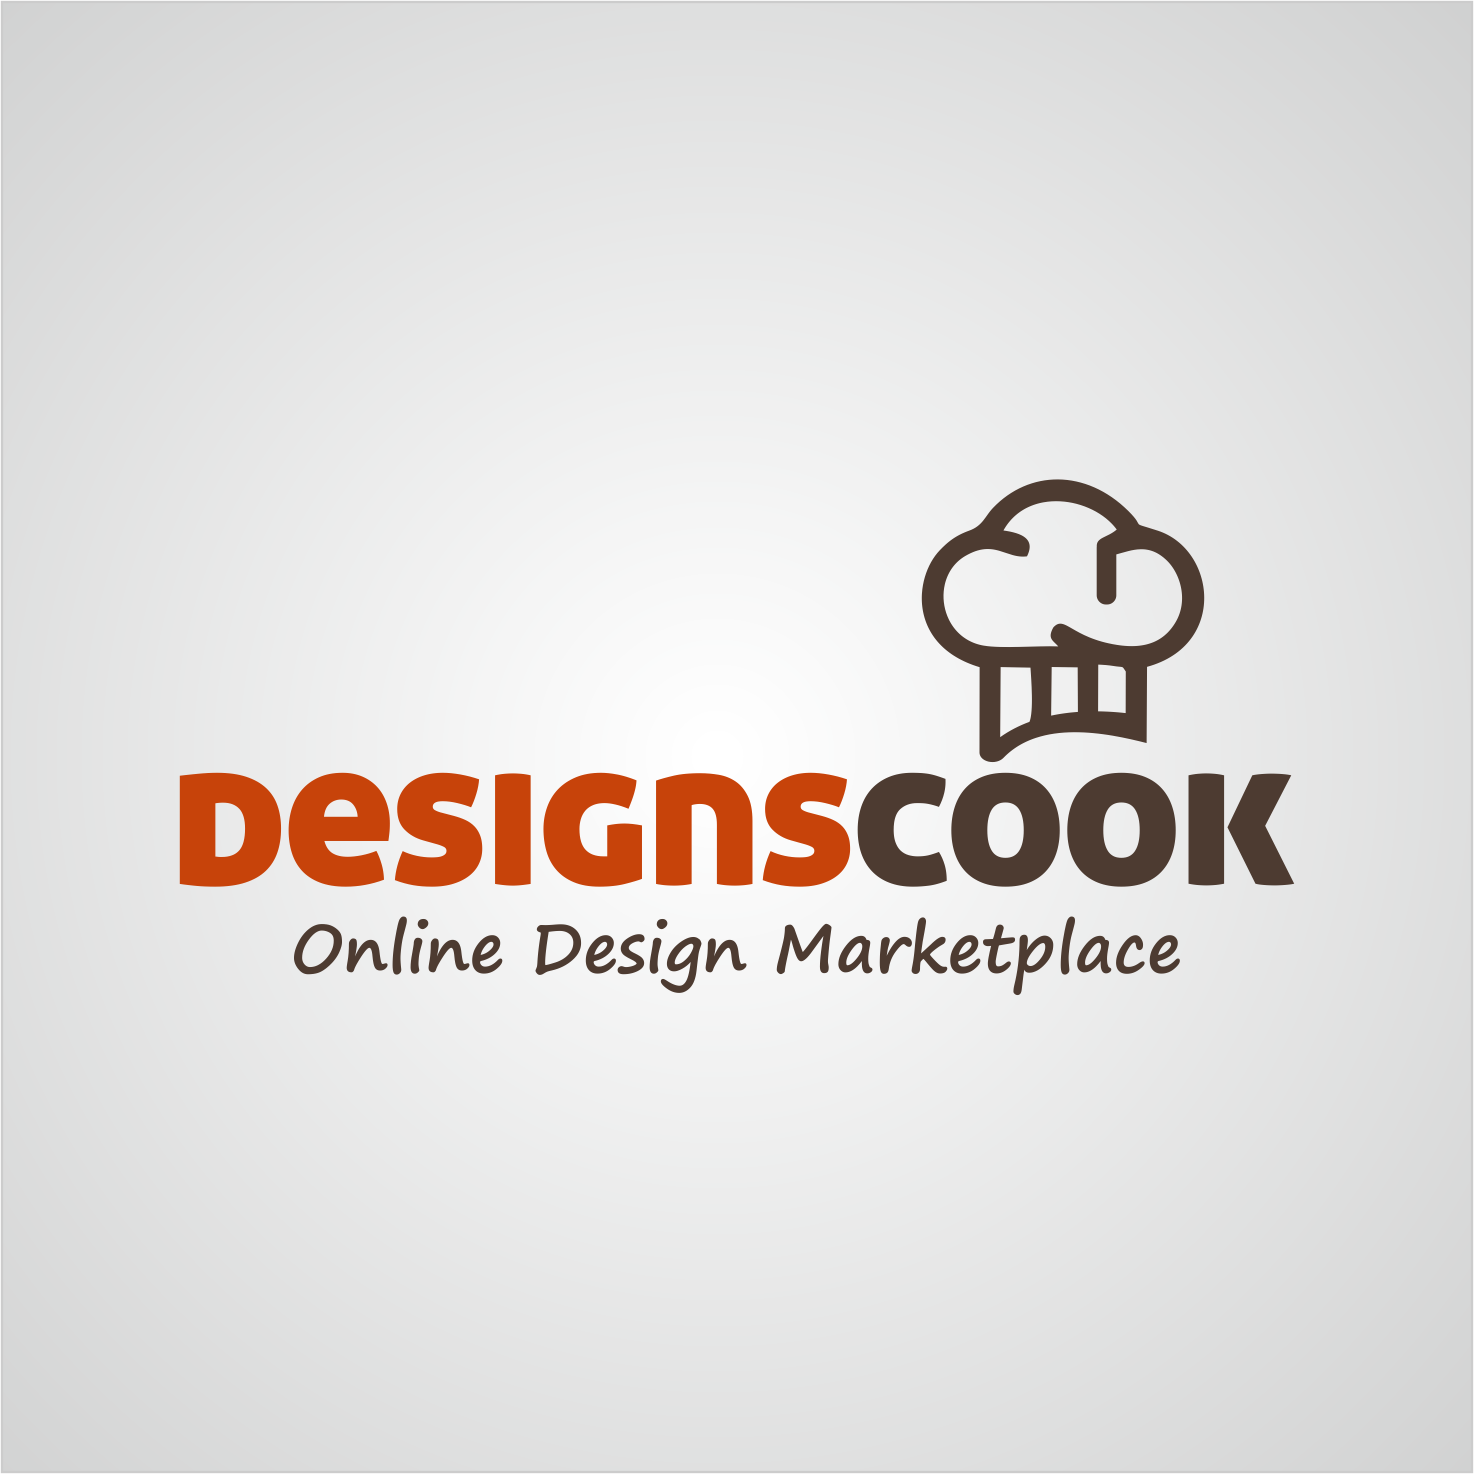 Designscook, a Marketplace for Designs